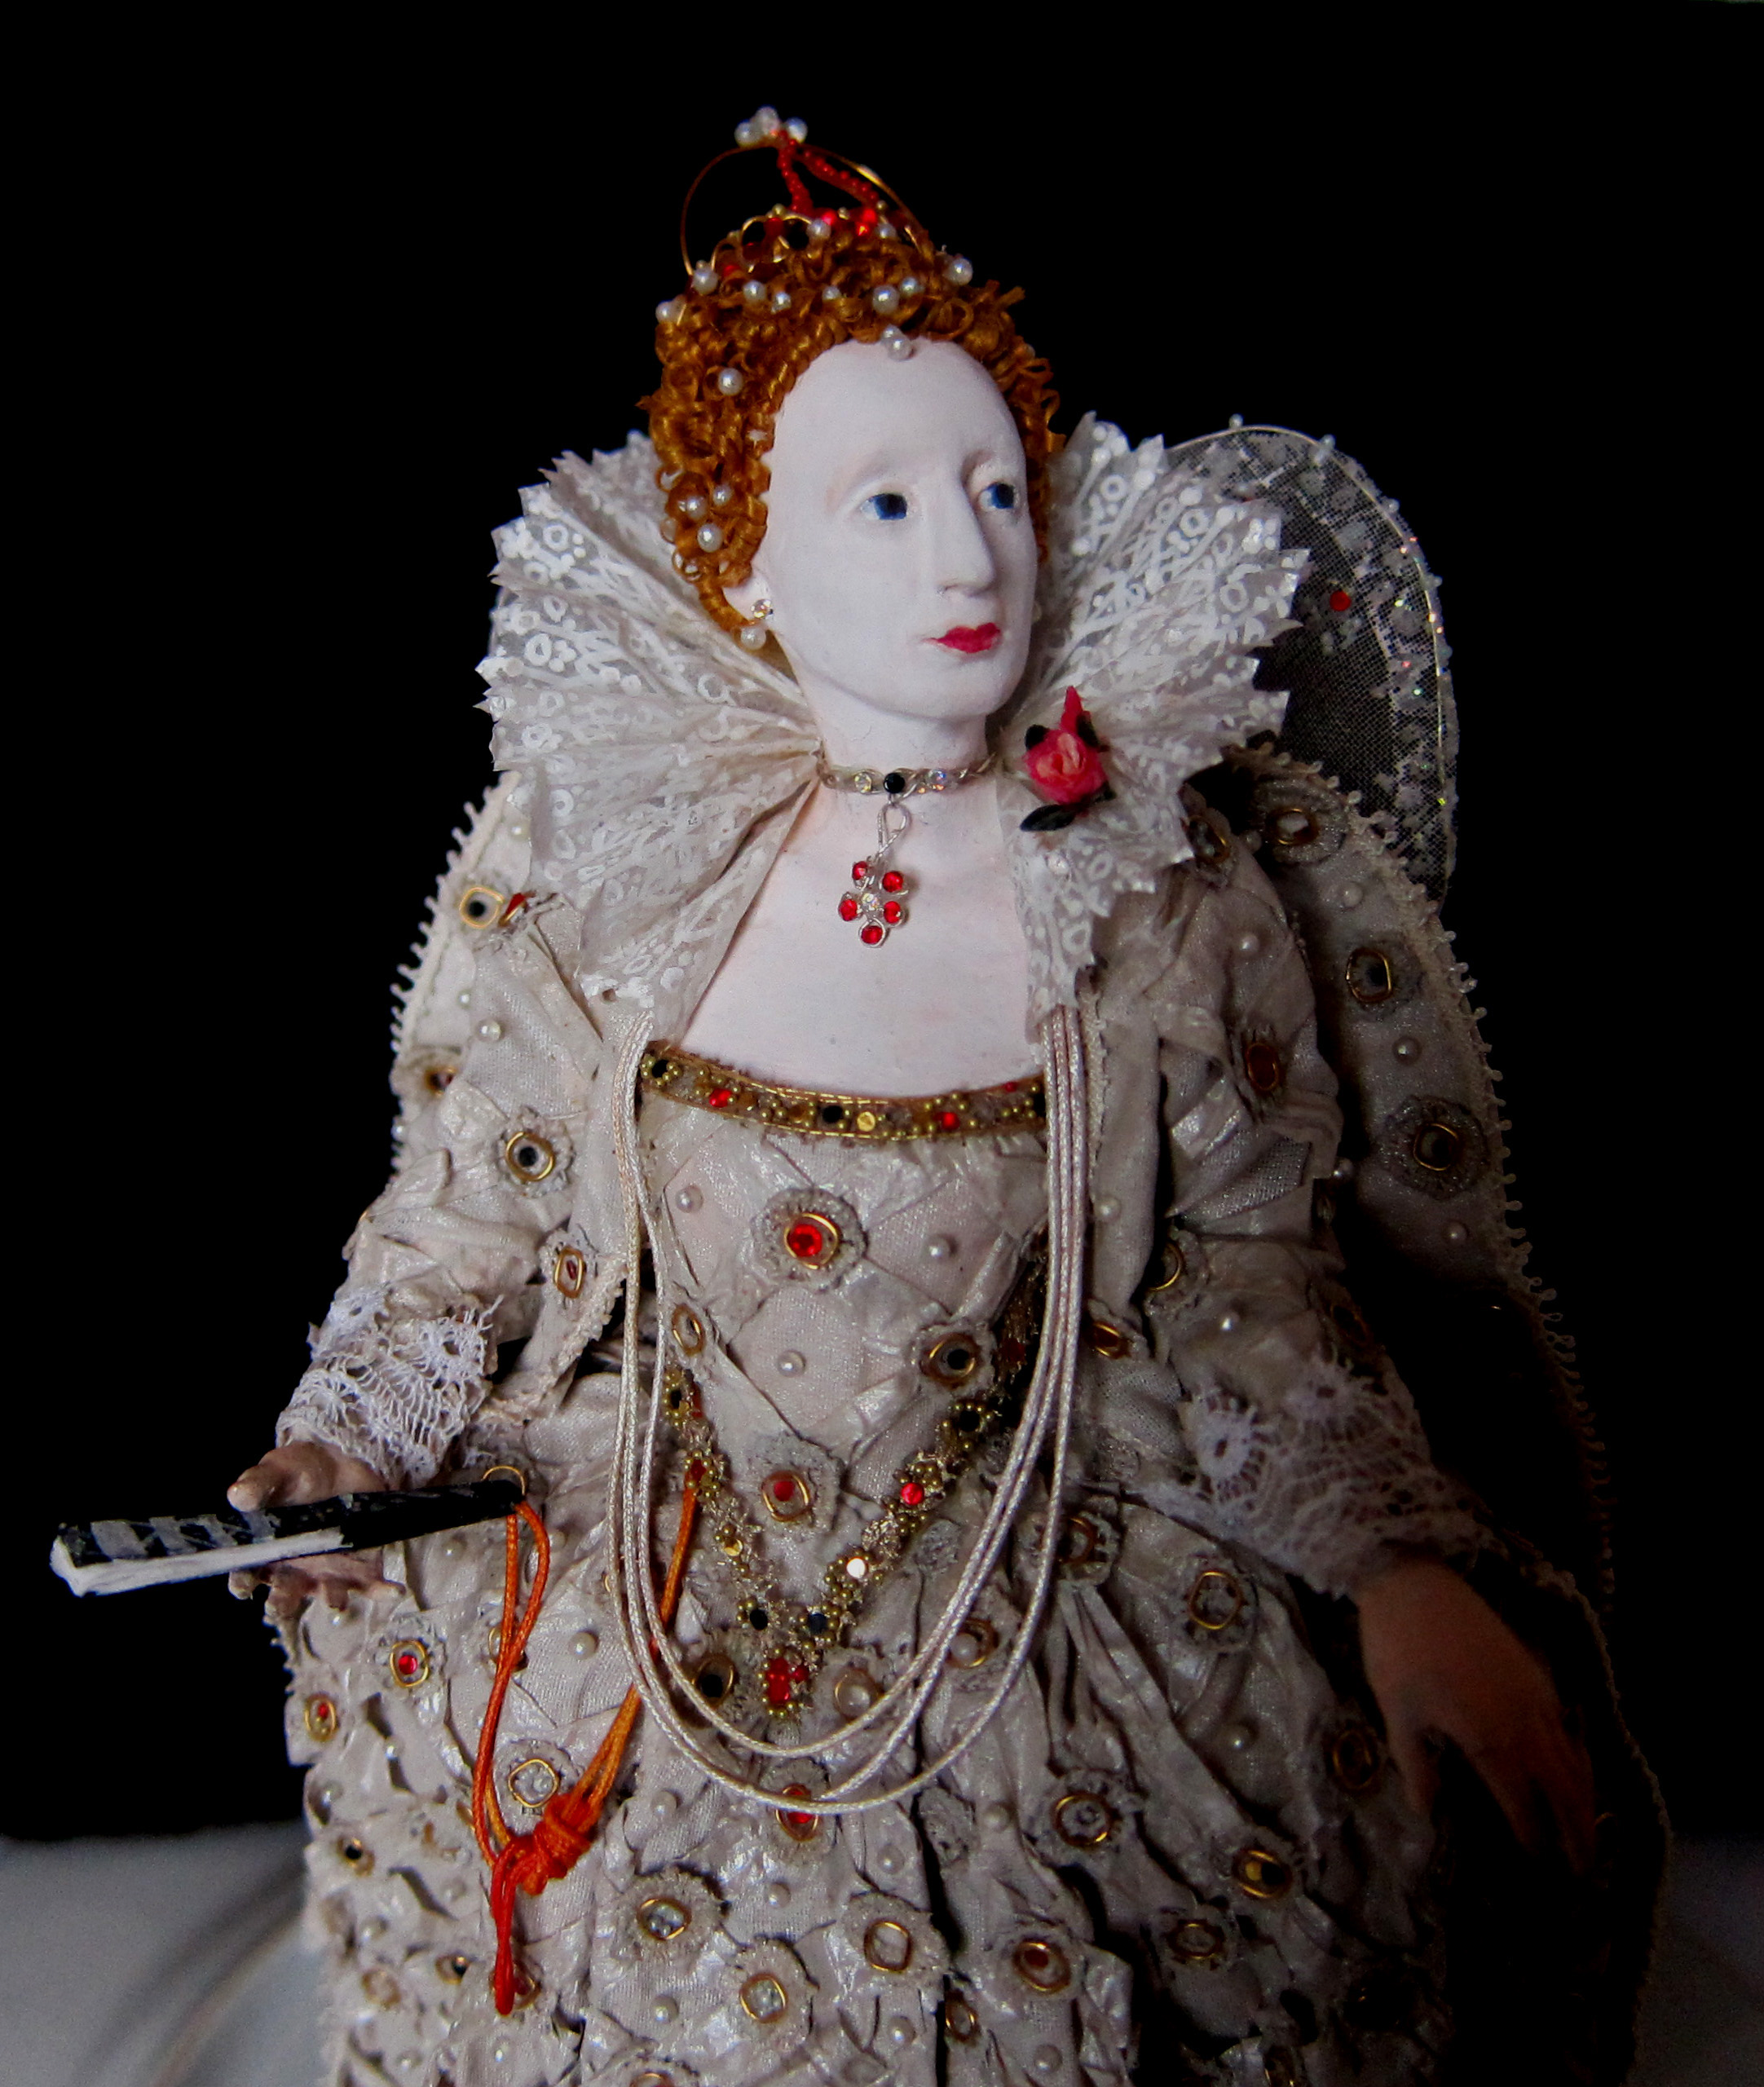 Elisabeth I in the Ditchley Dress